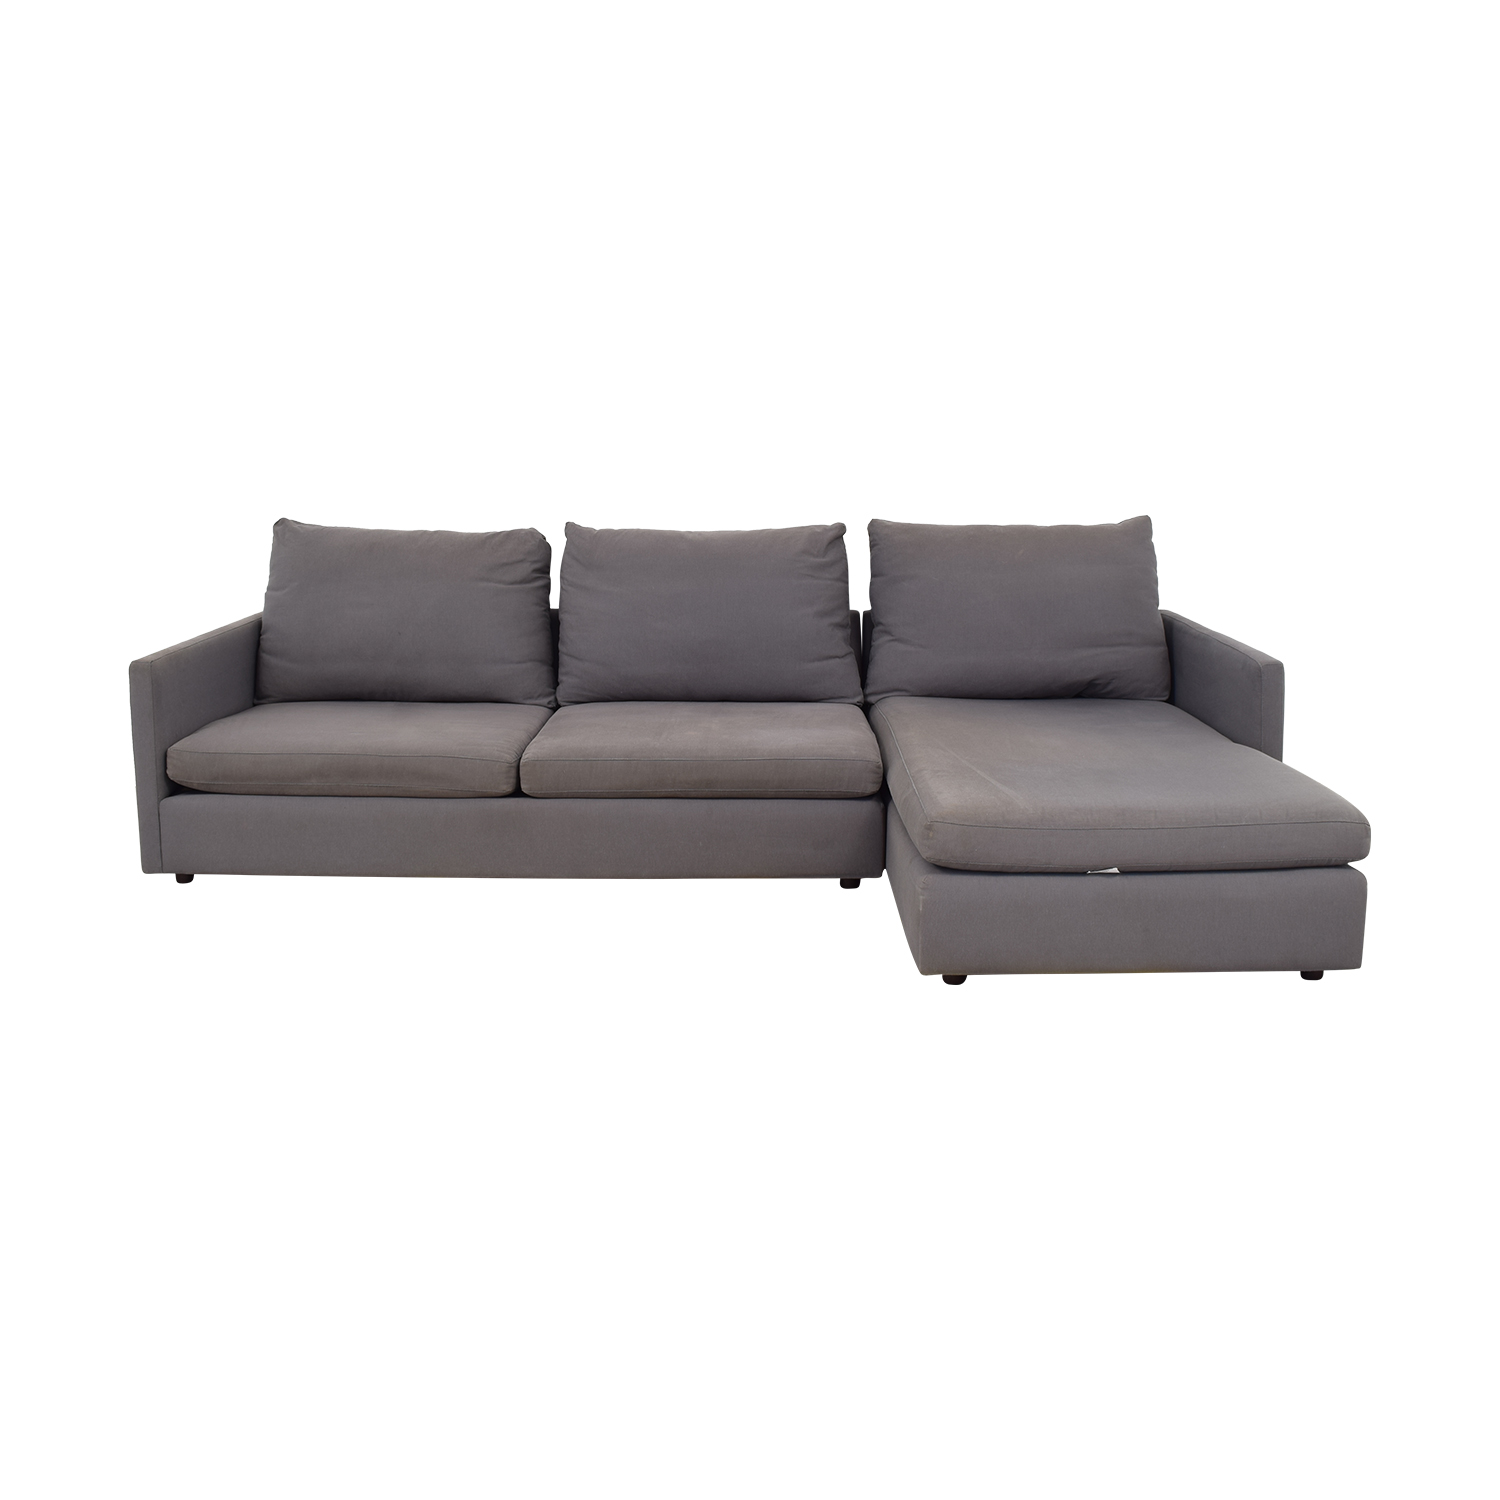 ABC Carpet & Home Cobble Hill Chaise Sectional Sofa ABC Carpet & Home